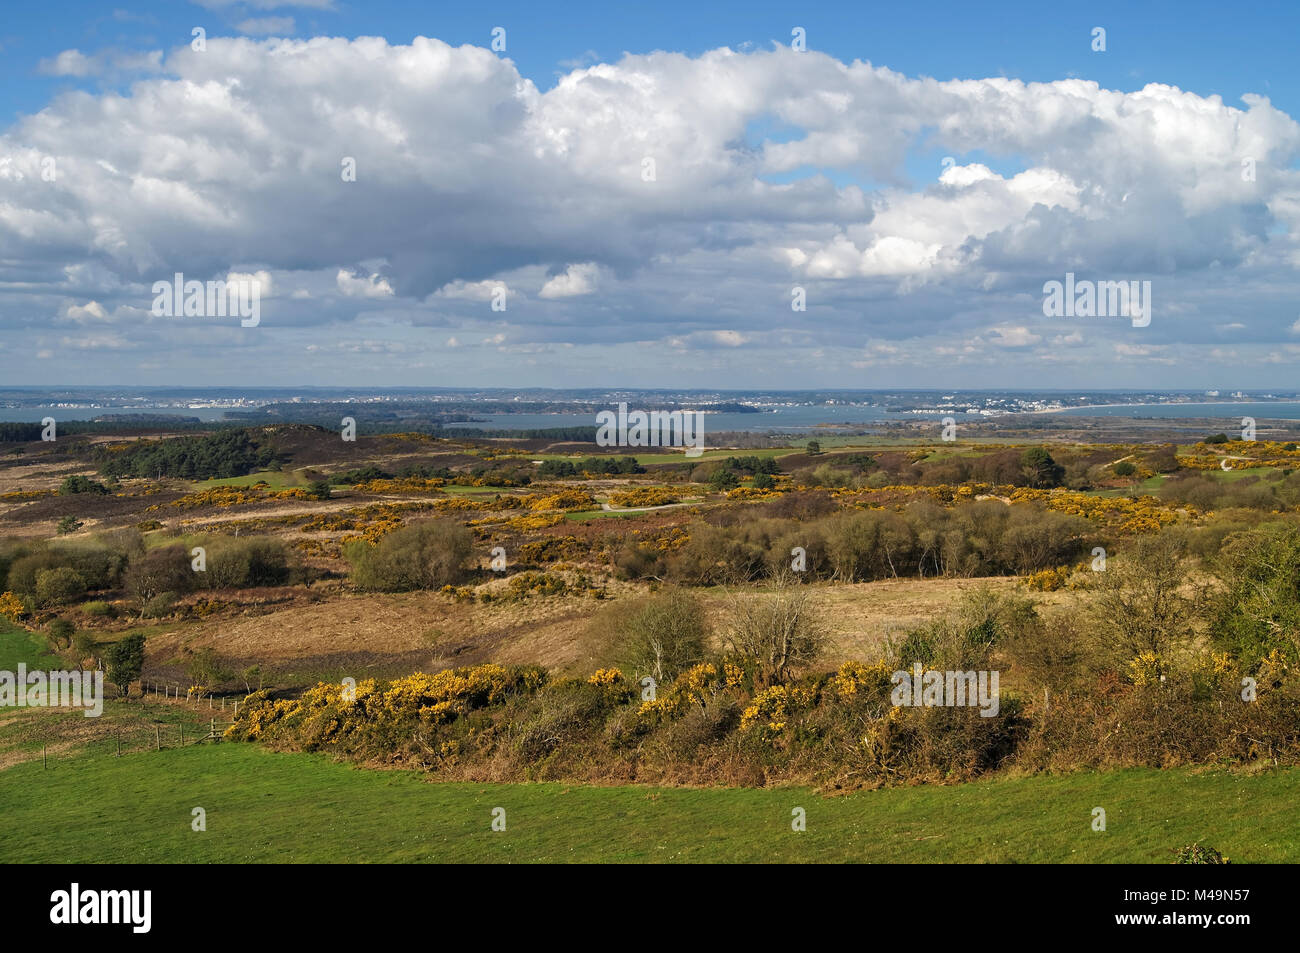 UK,Dorset,Isle of Purbeck,Newtown Viewpoint with Isle of Purbeck Golf Club,Godlingston Heath & Poole Harbour - Stock Image